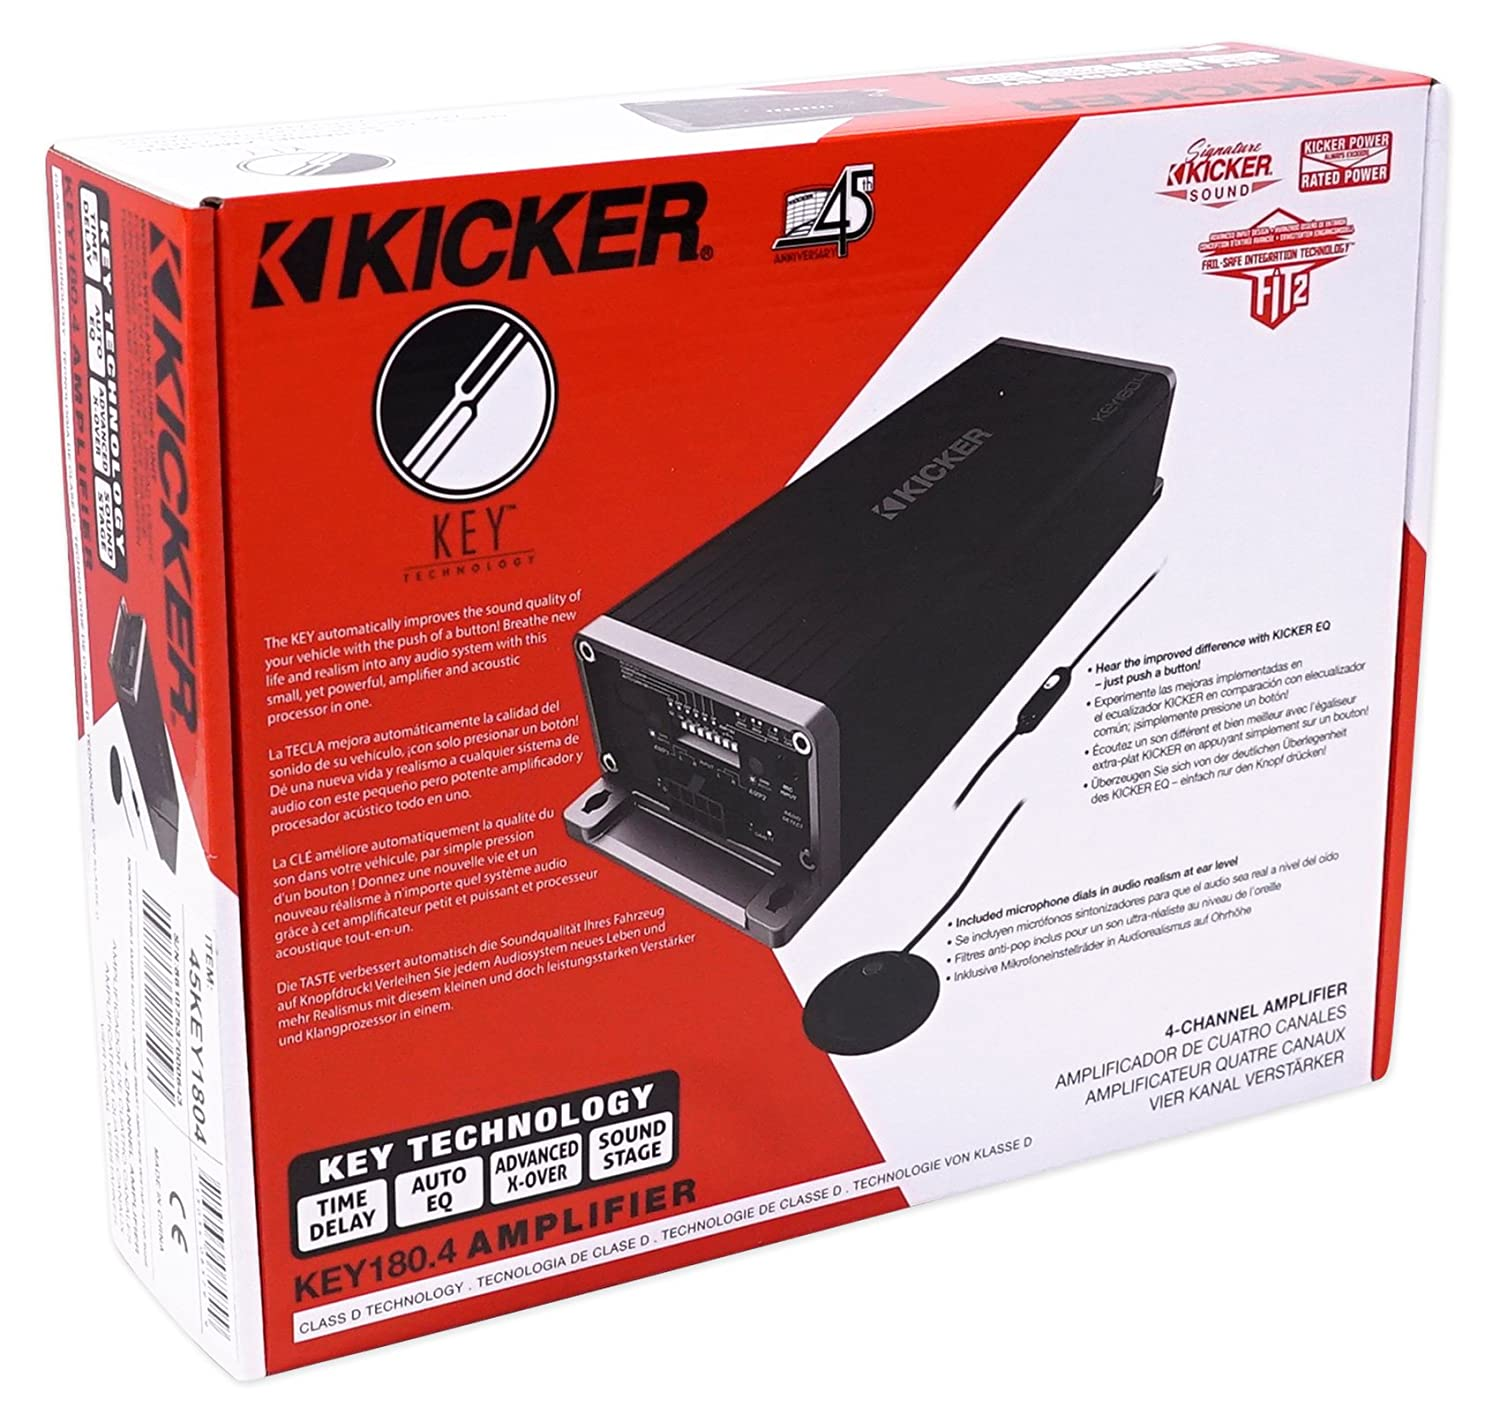 Amazon.com: KICKER 45KEY1804 180w 4-Channel Smart Amplifier KEY180.4 + Bluetooth Headphones: Car Electronics